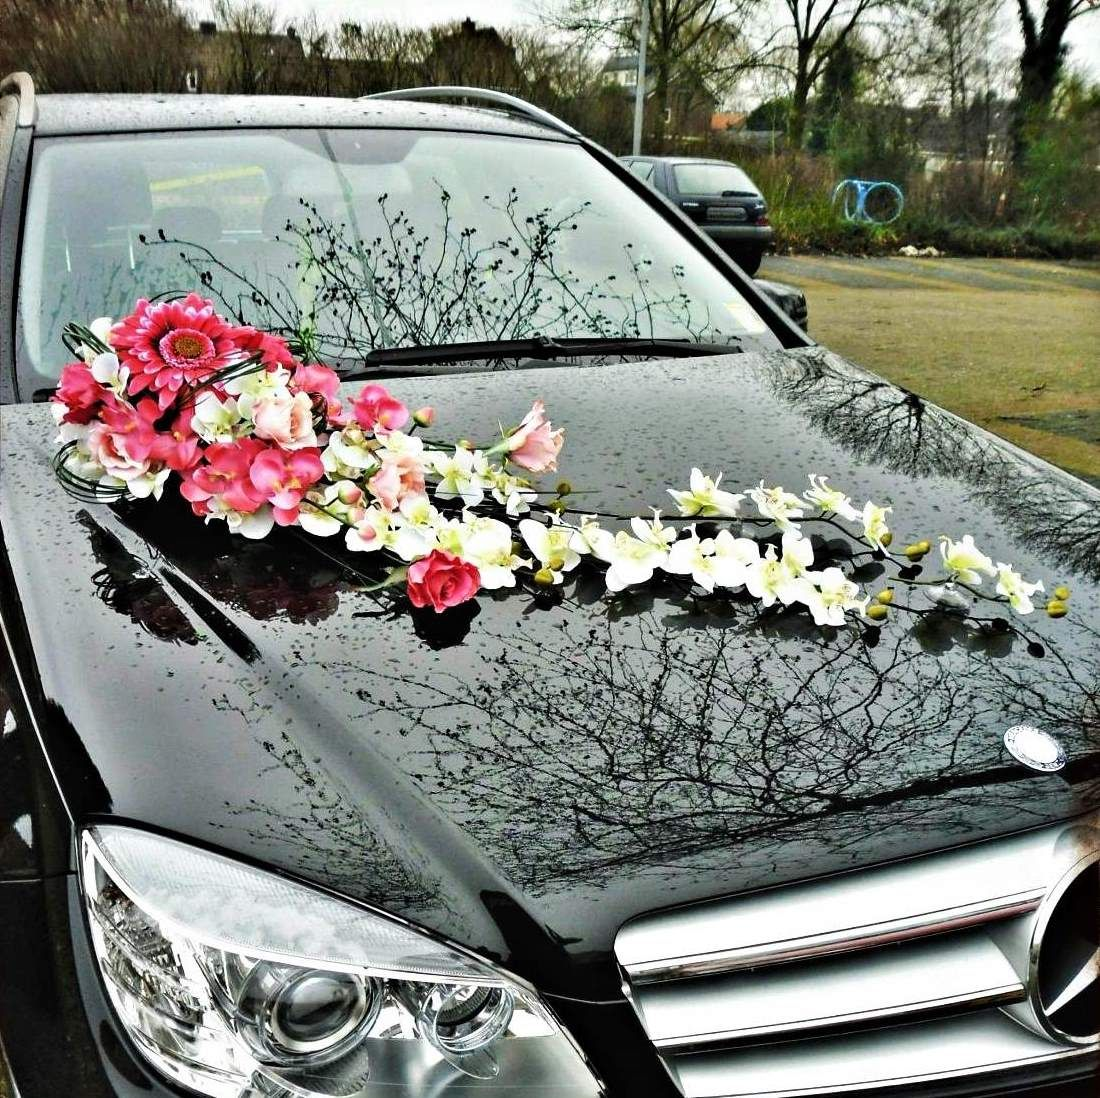 Decoration Mariage Voiture Tulle Wedding Car Decoration Décoration Voiture De Mariage Weddings